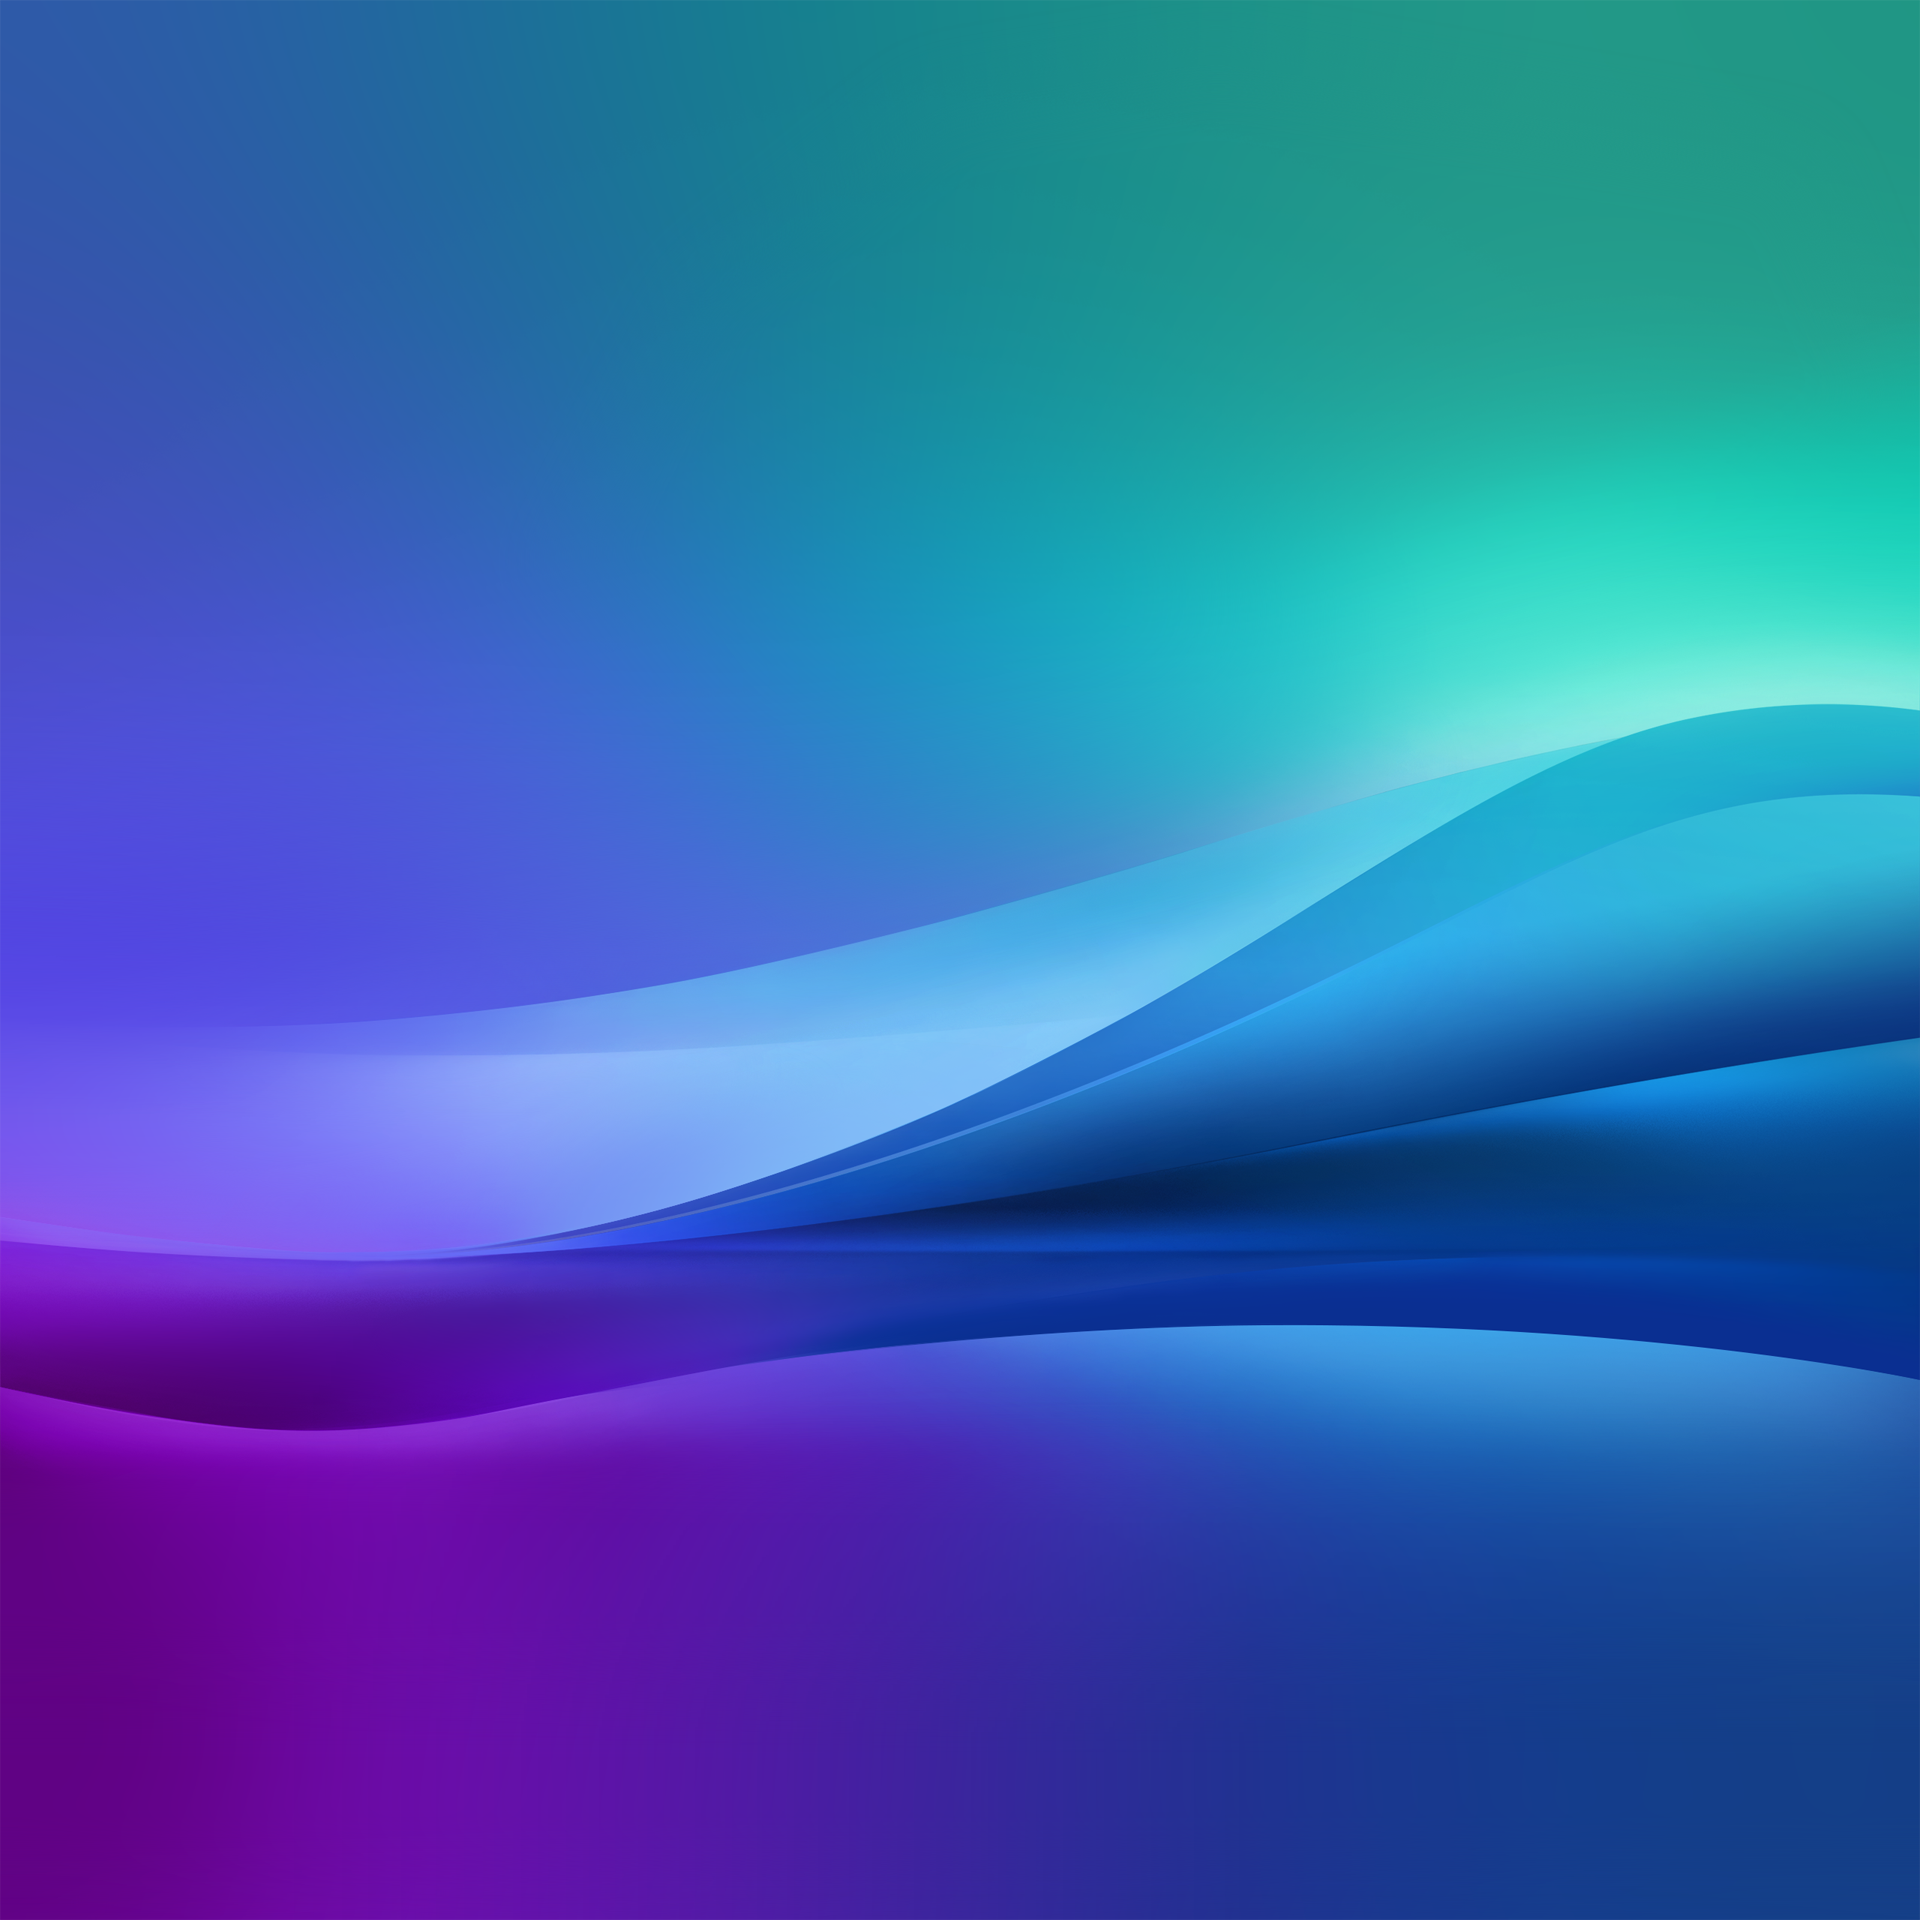 Wallpapers: You Can Grab The 15 Wallpapers From Samsung's Galaxy View